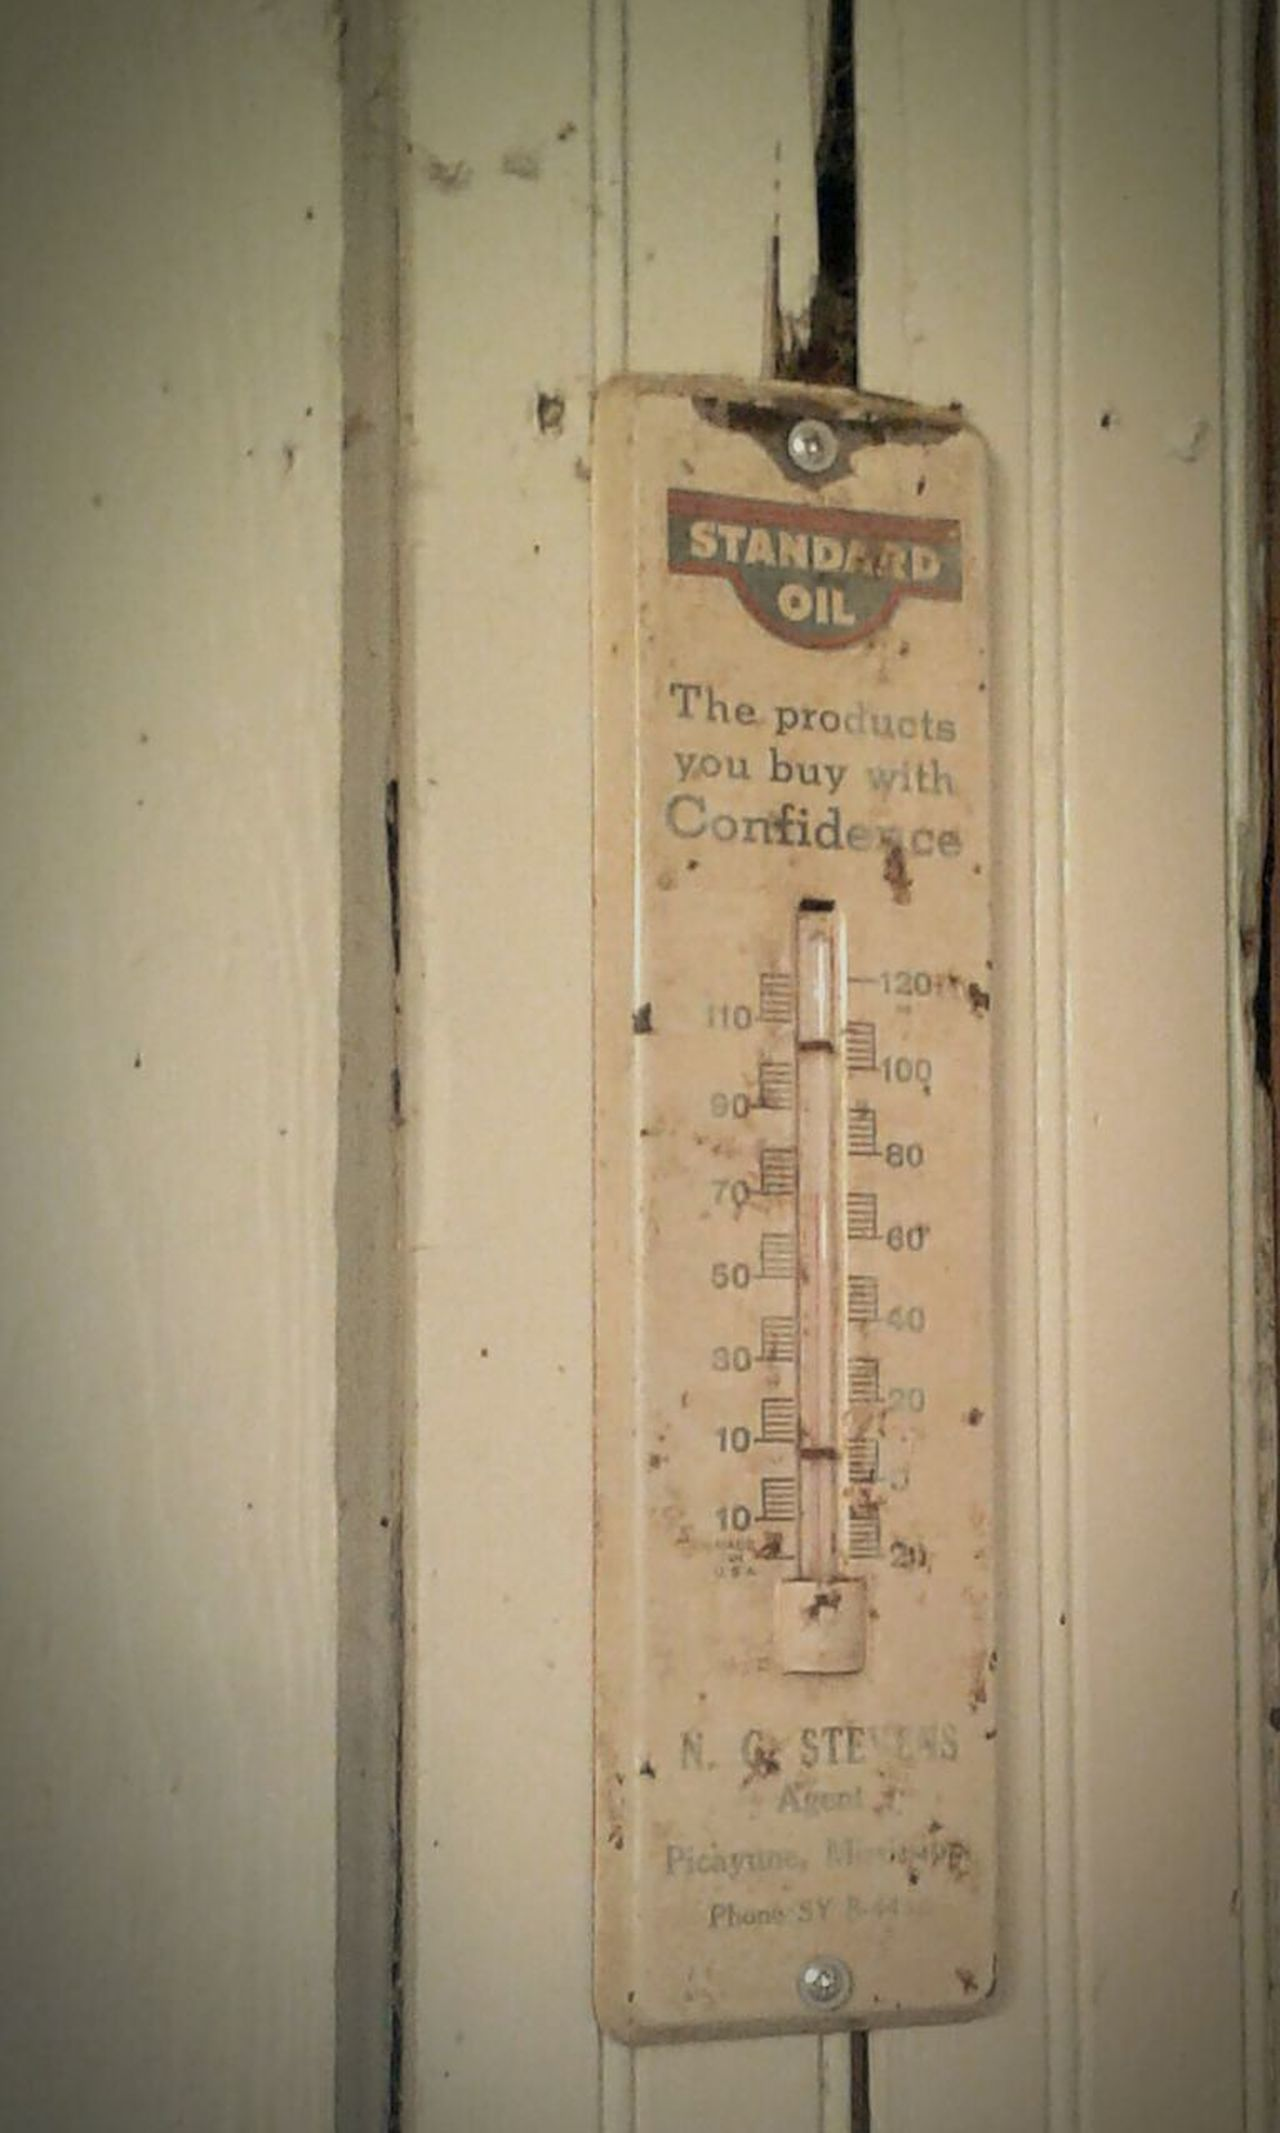 Temperature Thermometer Old Buildings Oldhouse Distressed Chipped Paint Flake Vintage Antique Oddities Collection Random Minimalism Communication Text Indoors  No People Hanging Day Close-up